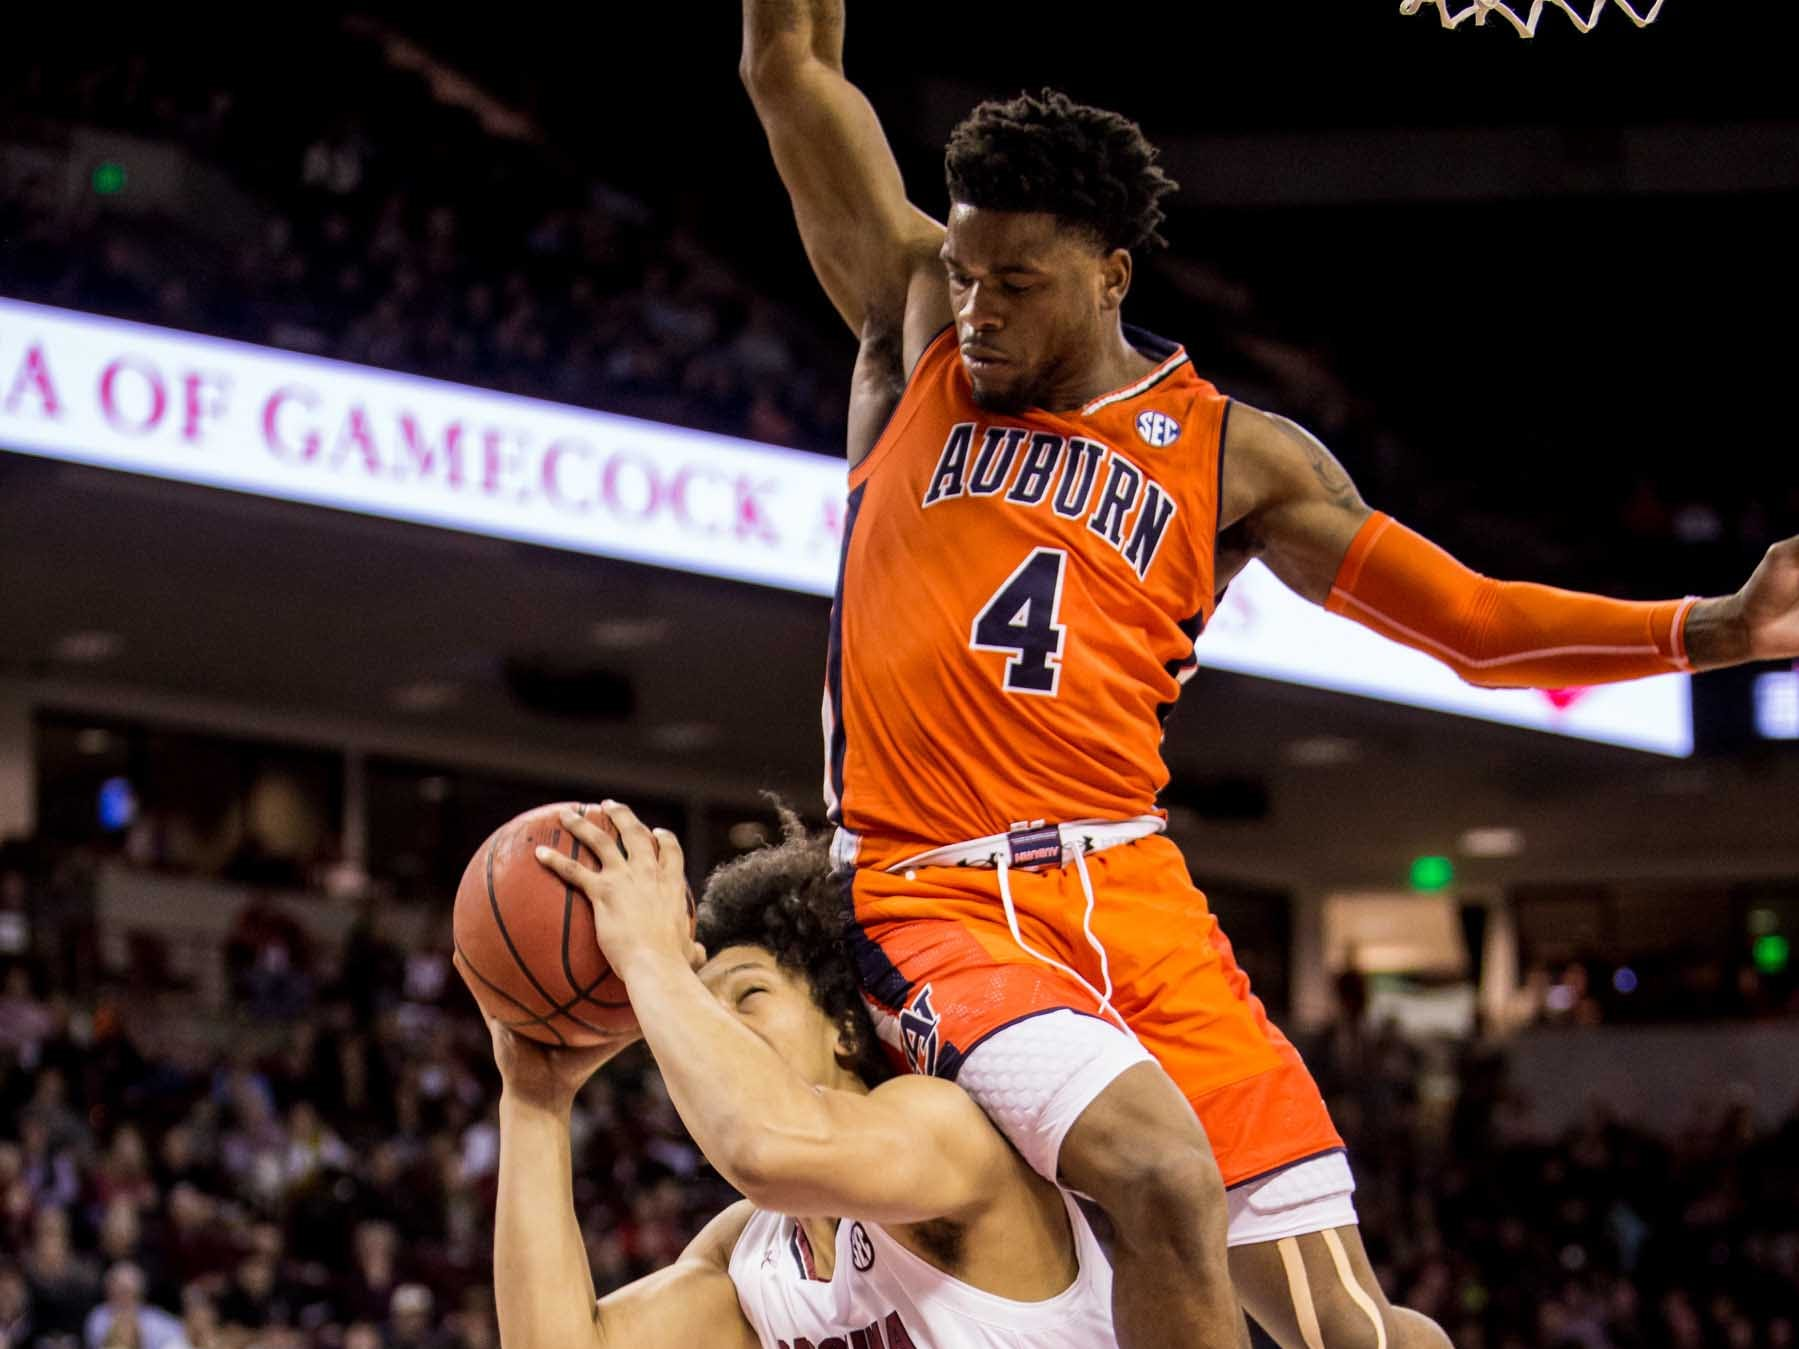 Jan 22, 2019; Columbia, SC, USA; South Carolina Gamecocks forward Alanzo Frink (20) is fouled by Auburn Tigers guard Malik Dunbar (4) in the first half at Colonial Life Arena. Mandatory Credit: Jeff Blake-USA TODAY Sports